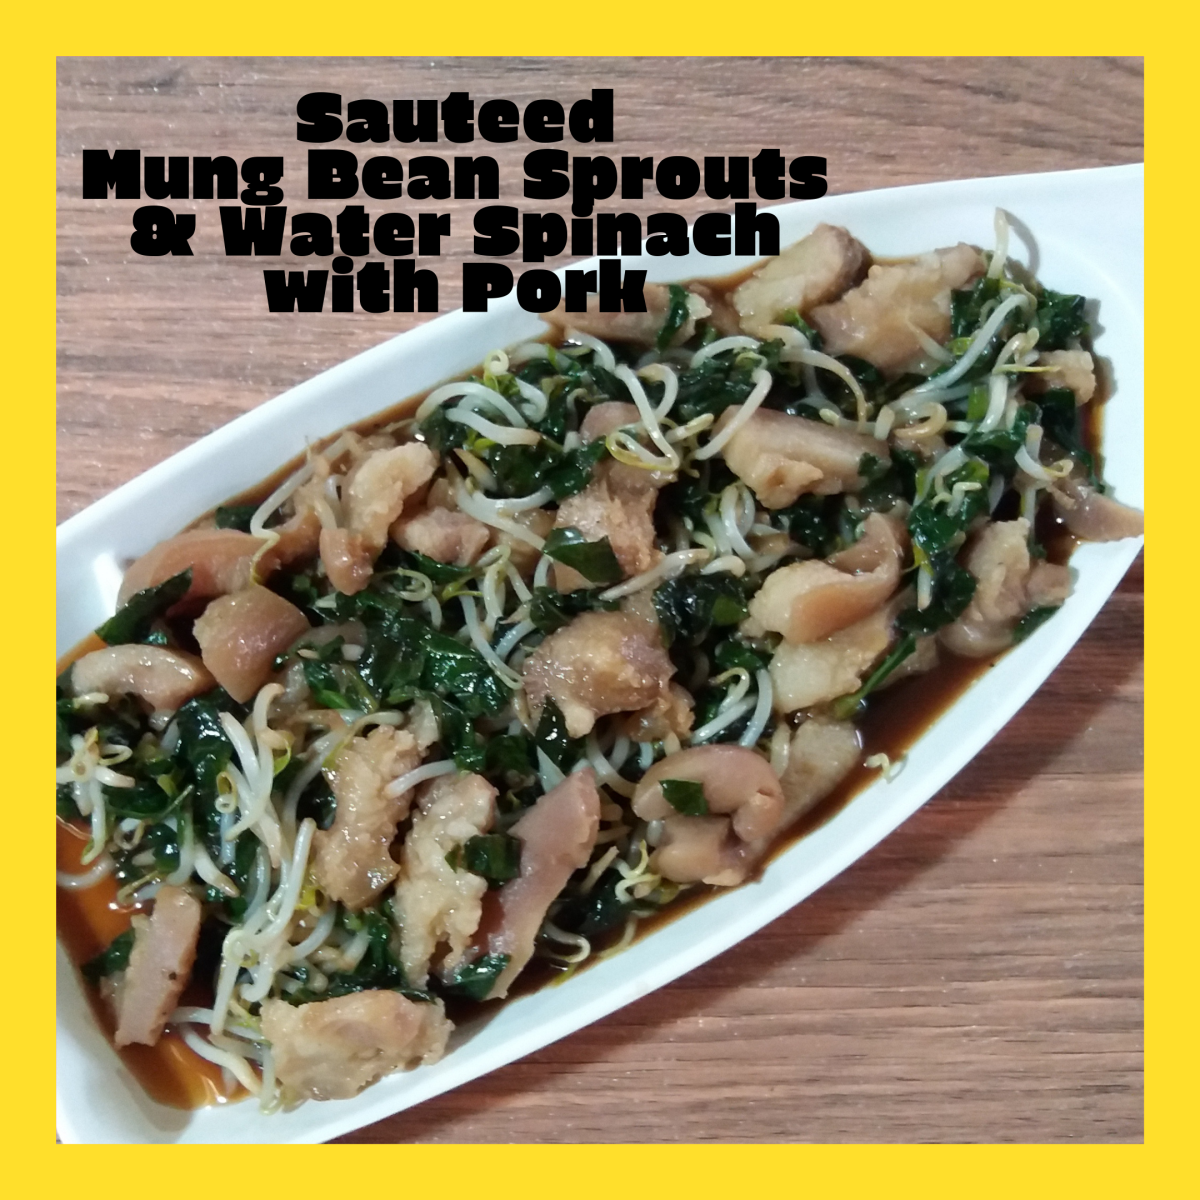 Sauteed Mung Bean Sprouts and Water Spinach With Pork Recipe